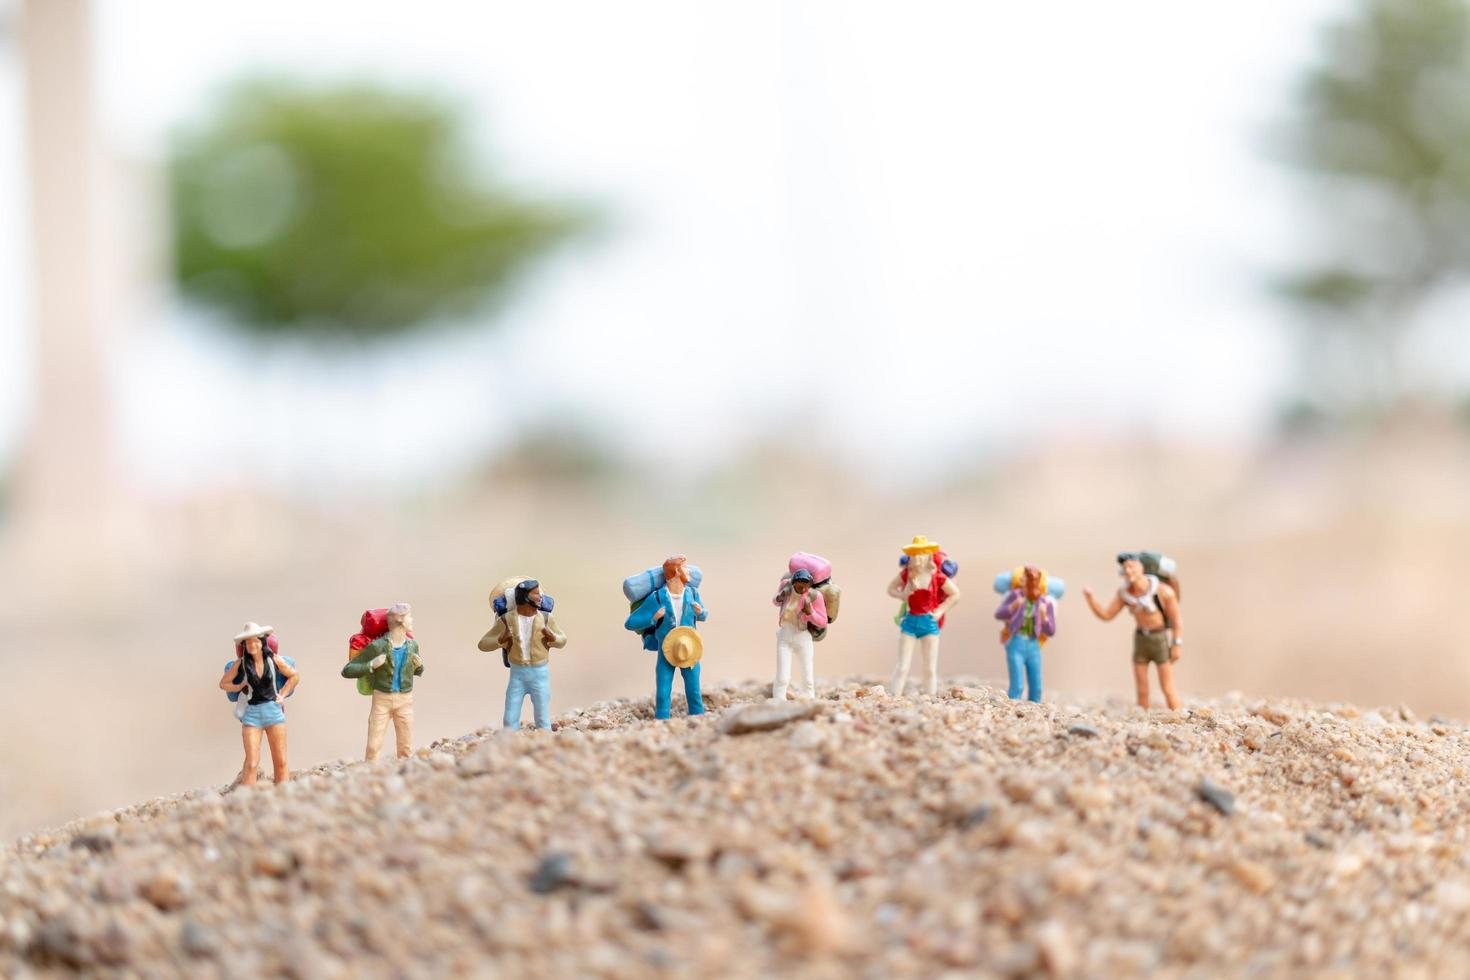 Miniature travelers with backpacks walking on sand, travel and adventure concept photo